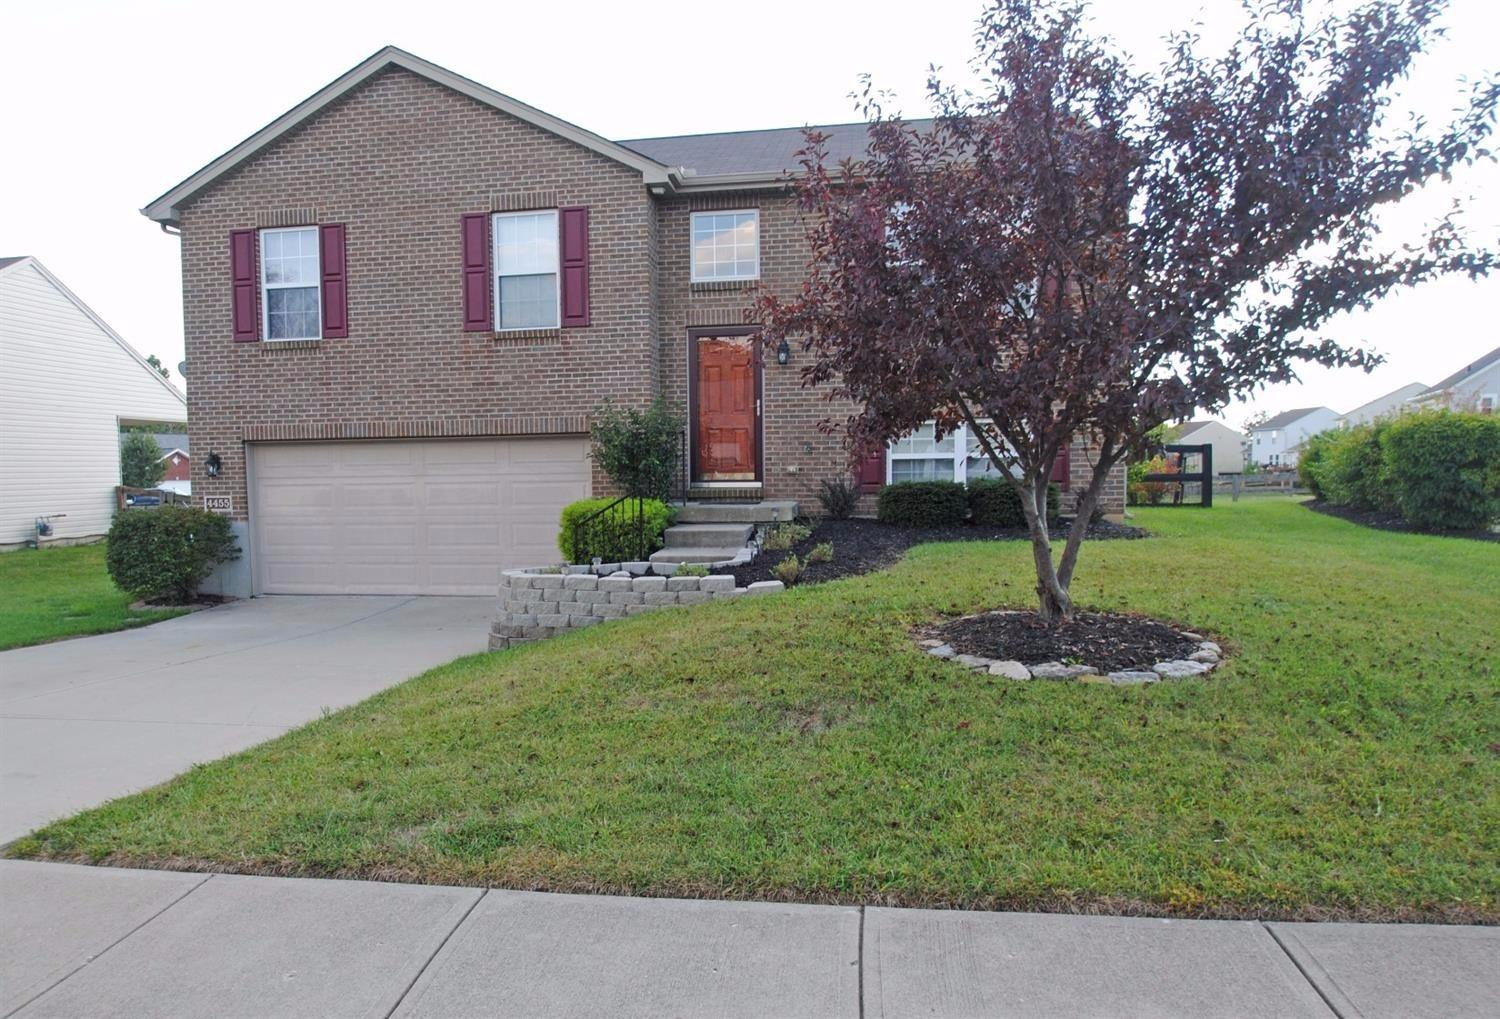 4455 Kidwell Ln, Ft Wright, KY 41017